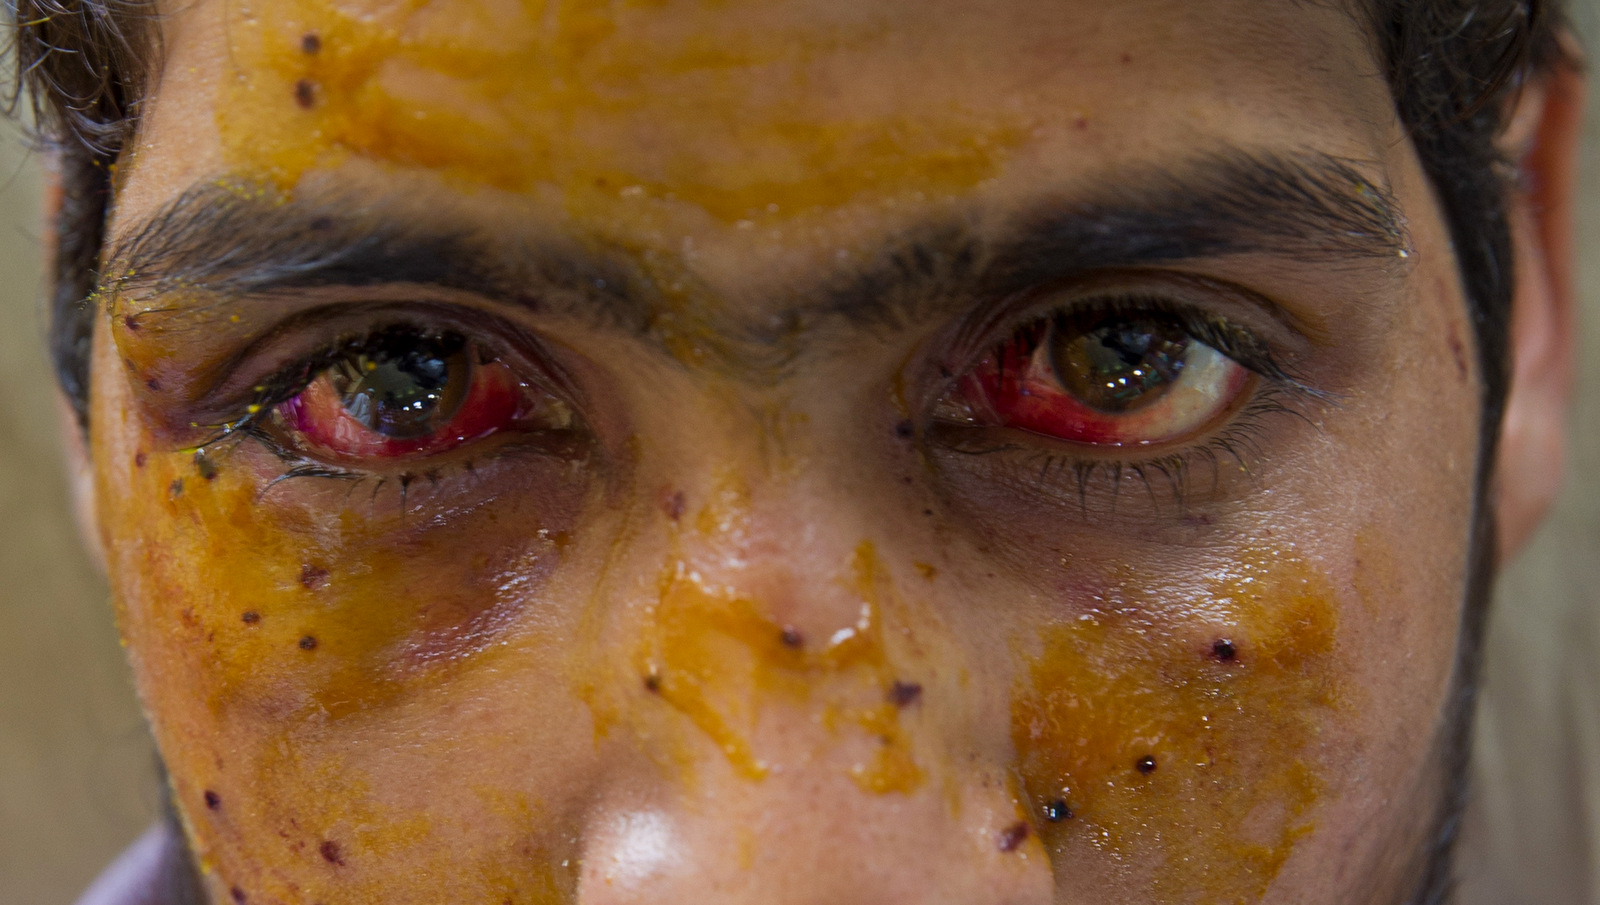 Mohammad Imran Parray, who got wounded after being hit by pellets during a protest recovers at a hospital in Srinagar, Indian controlled Kashmir. (AP Photo/Dar Yasin, File)